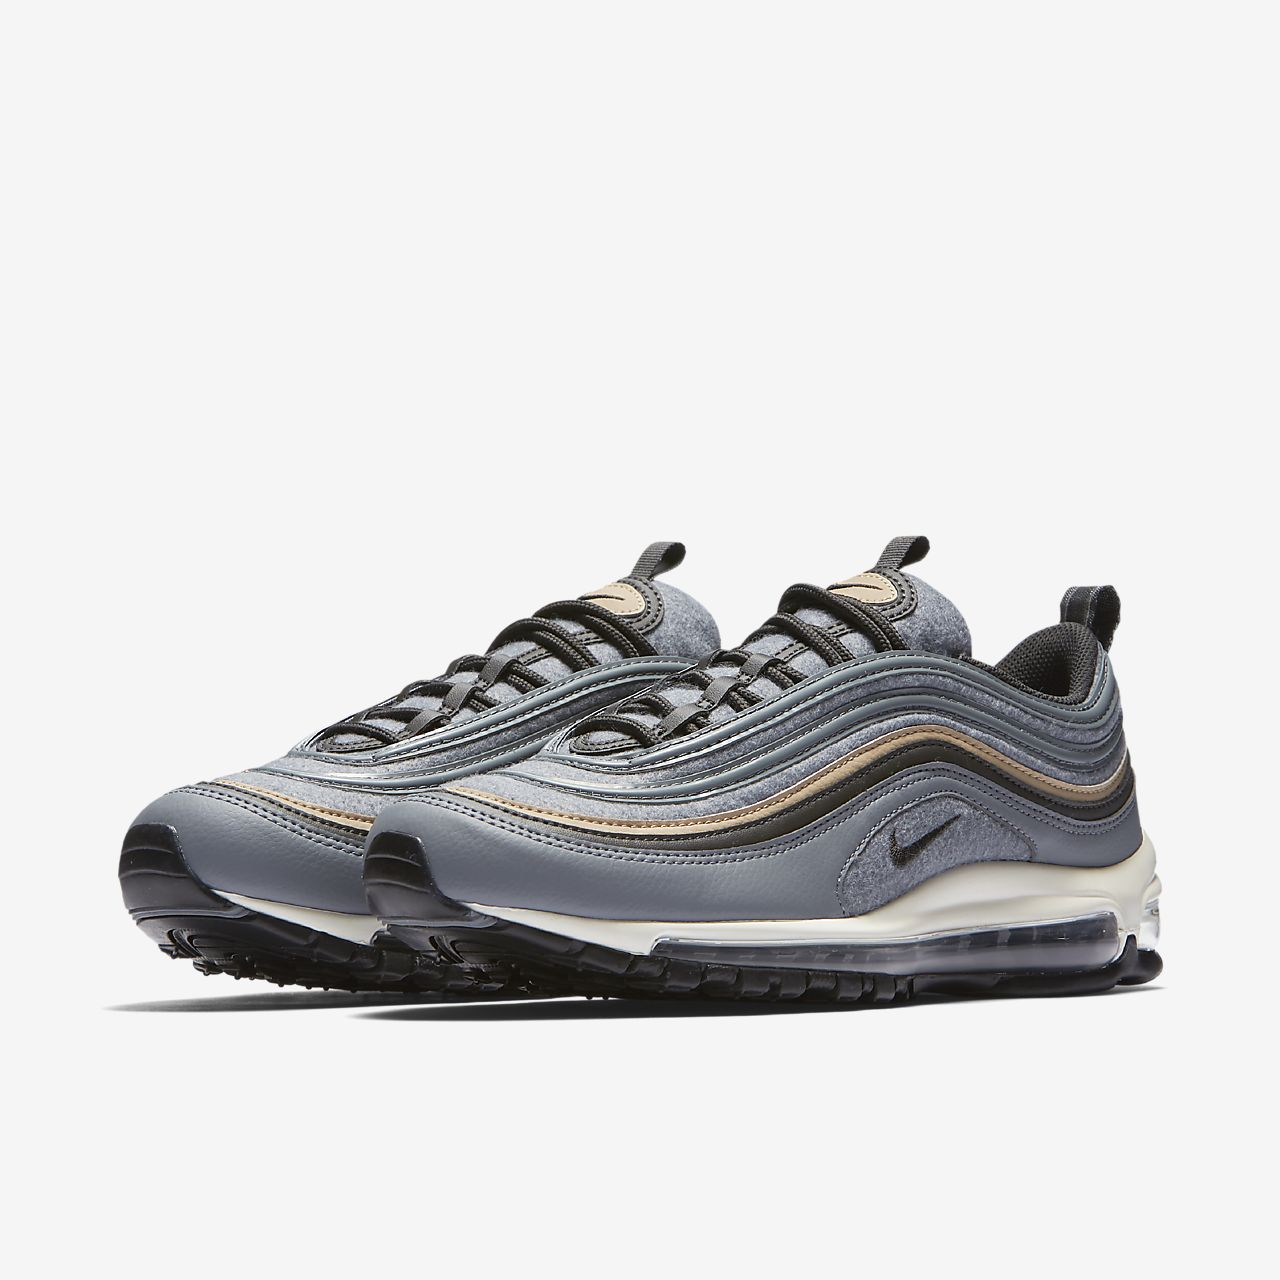 "Nike's Air Max 97 Ultra Surfaces in a Fall Perfect ""Sequoia /a></h3><div class="